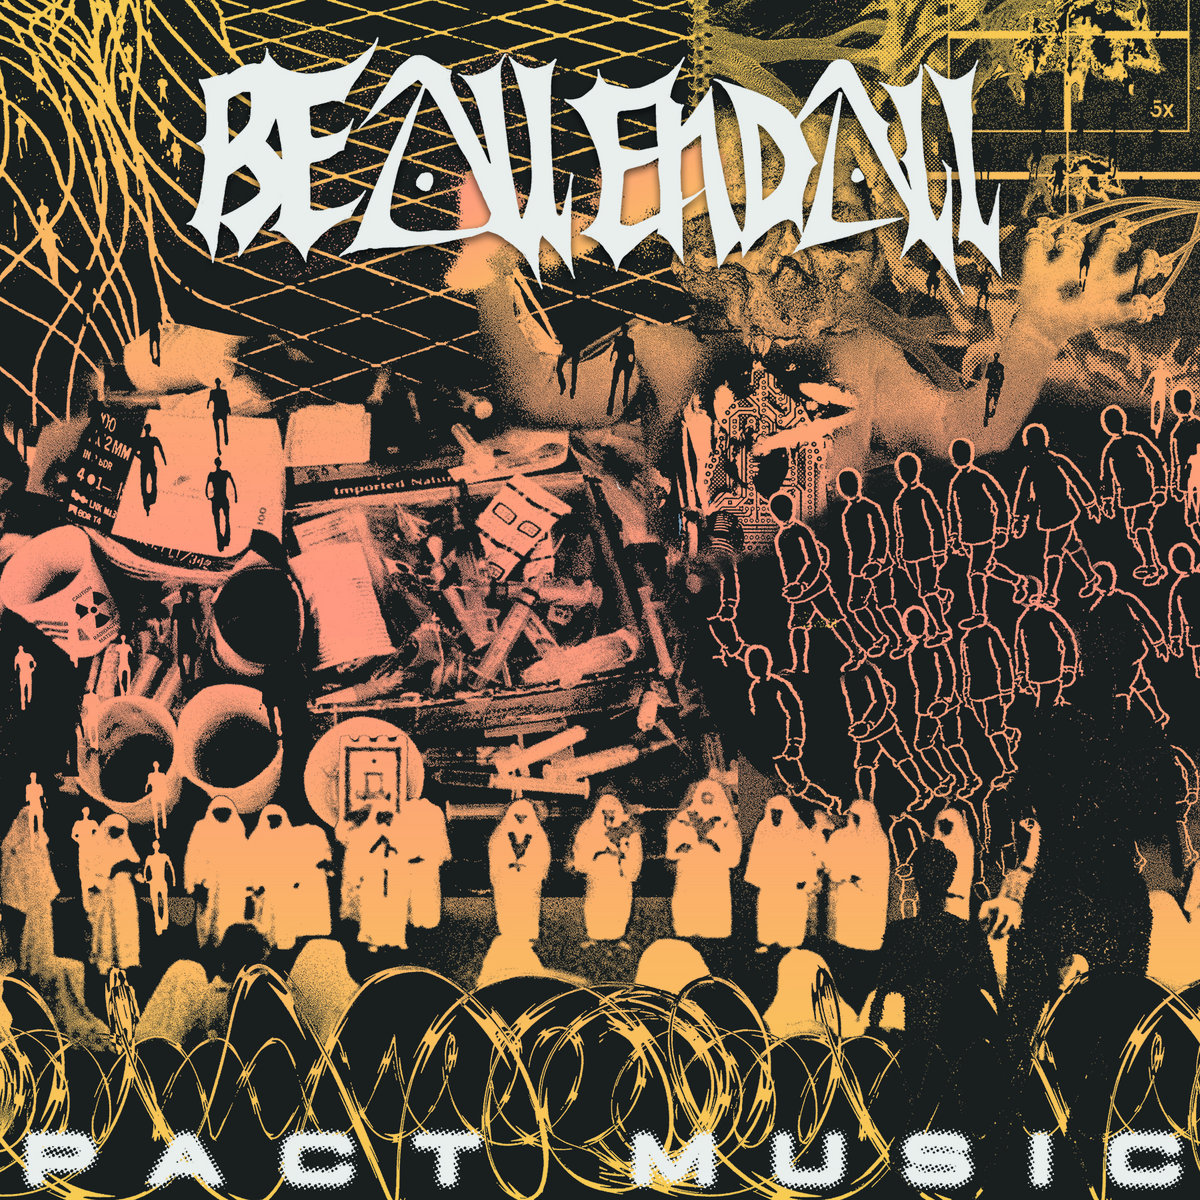 Be All End All - Pact music LP